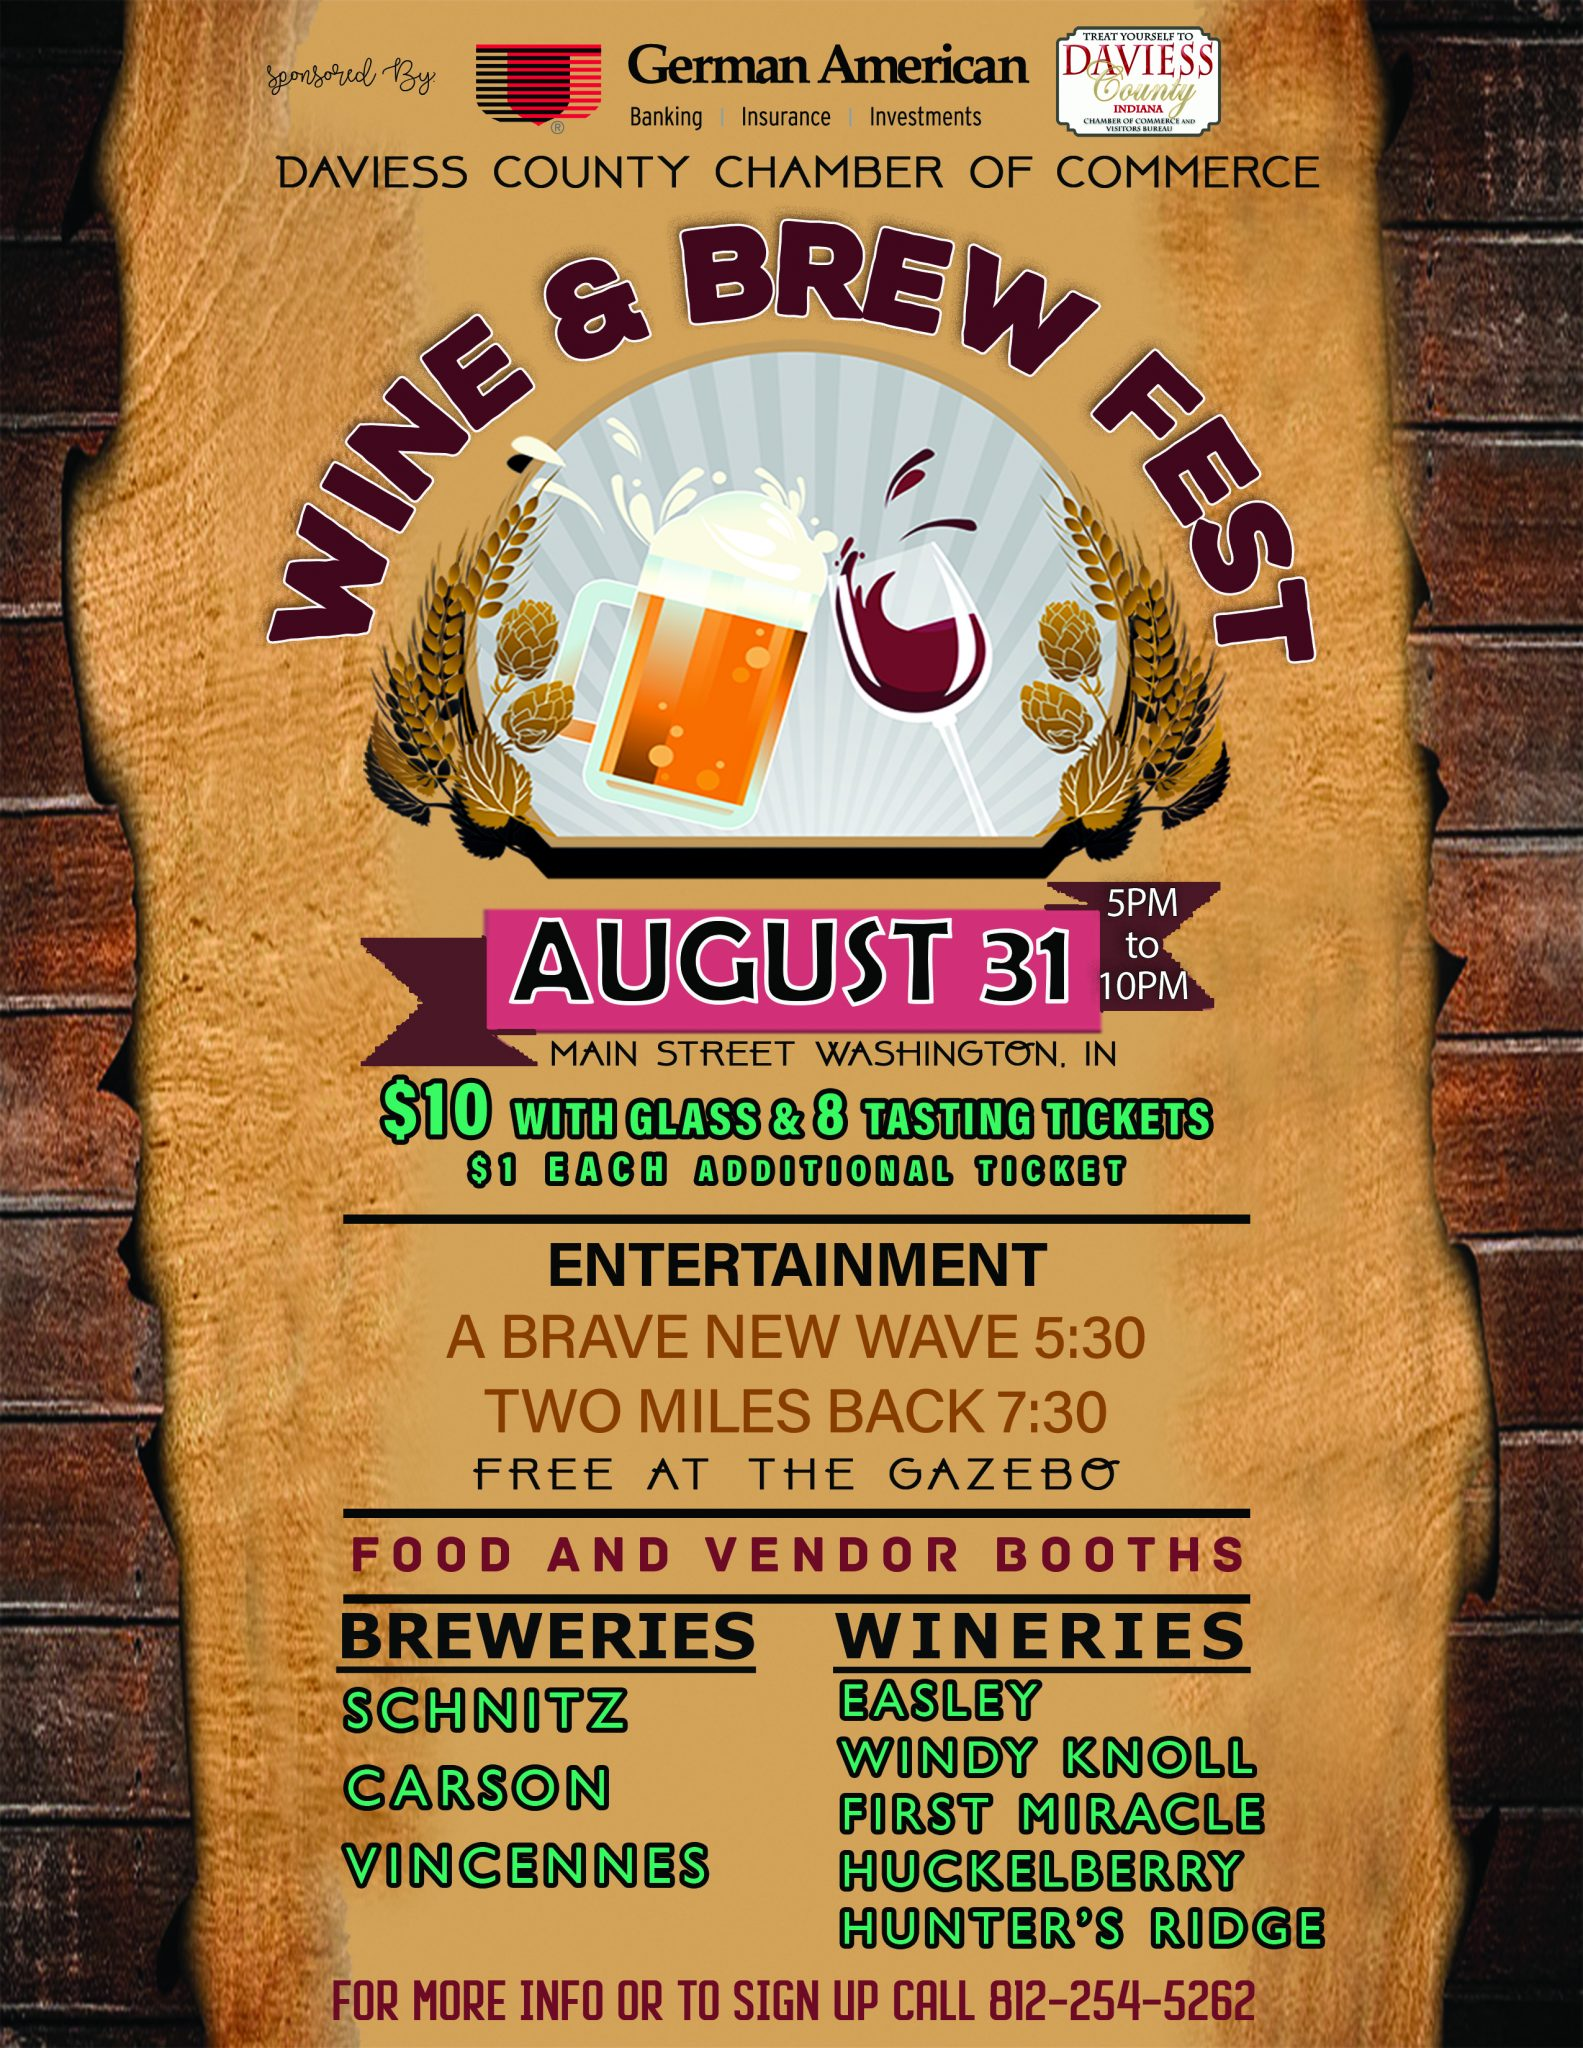 Wine and Brew Fest is coming!!!